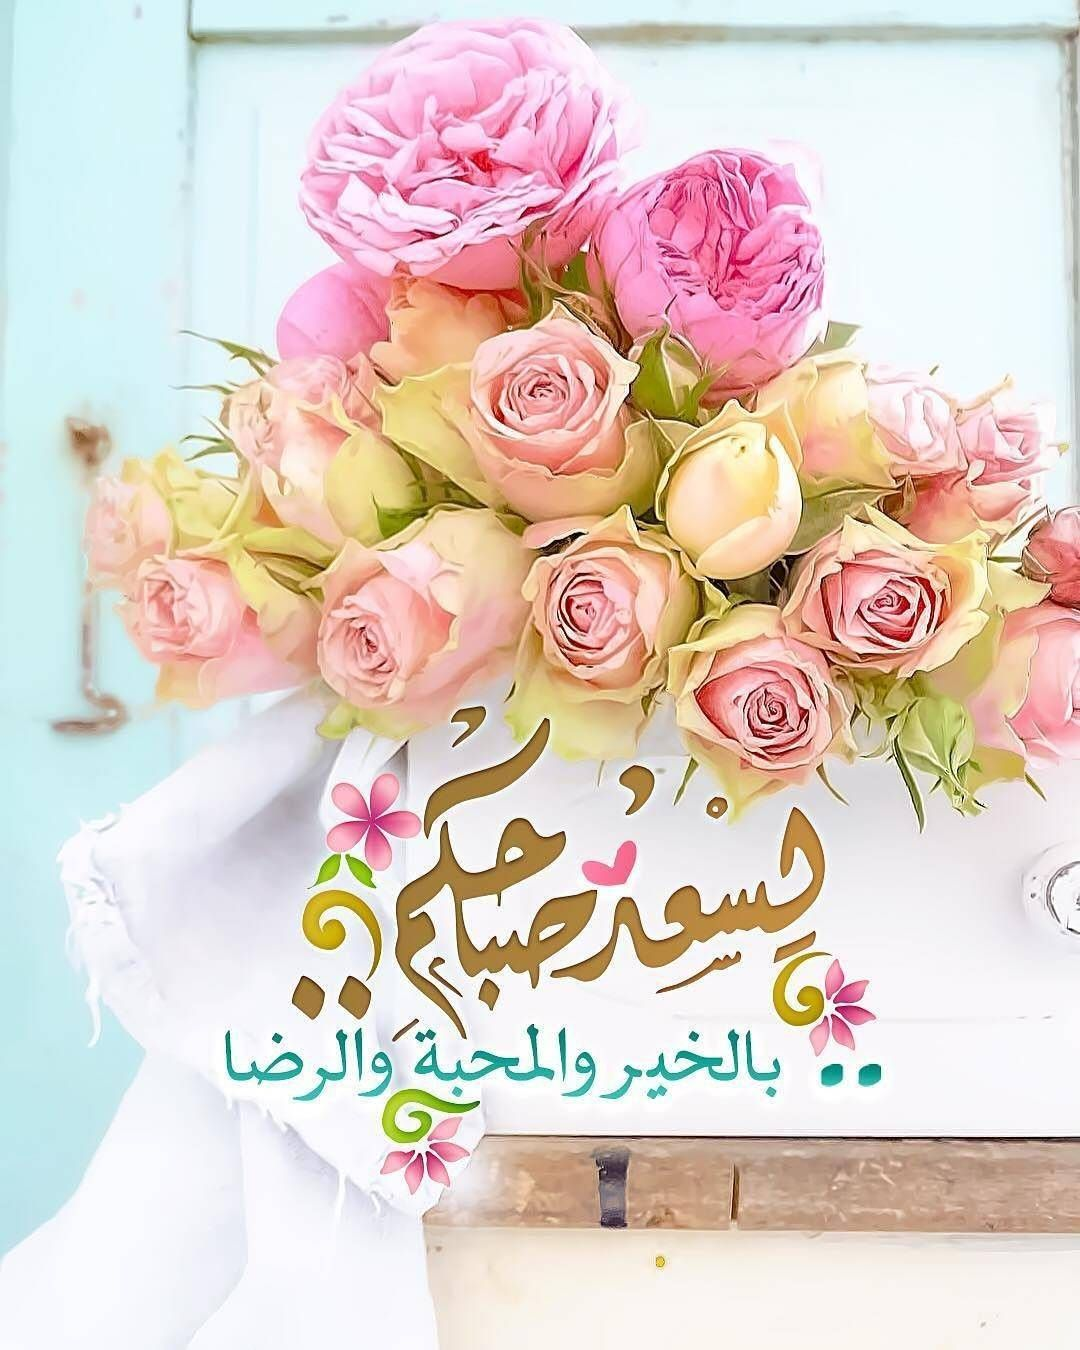 صباح الخيرات والمسرات صباح الورد صباح Beautiful Morning Messages Good Morning Beautiful Flowers Good Morning Images Flowers